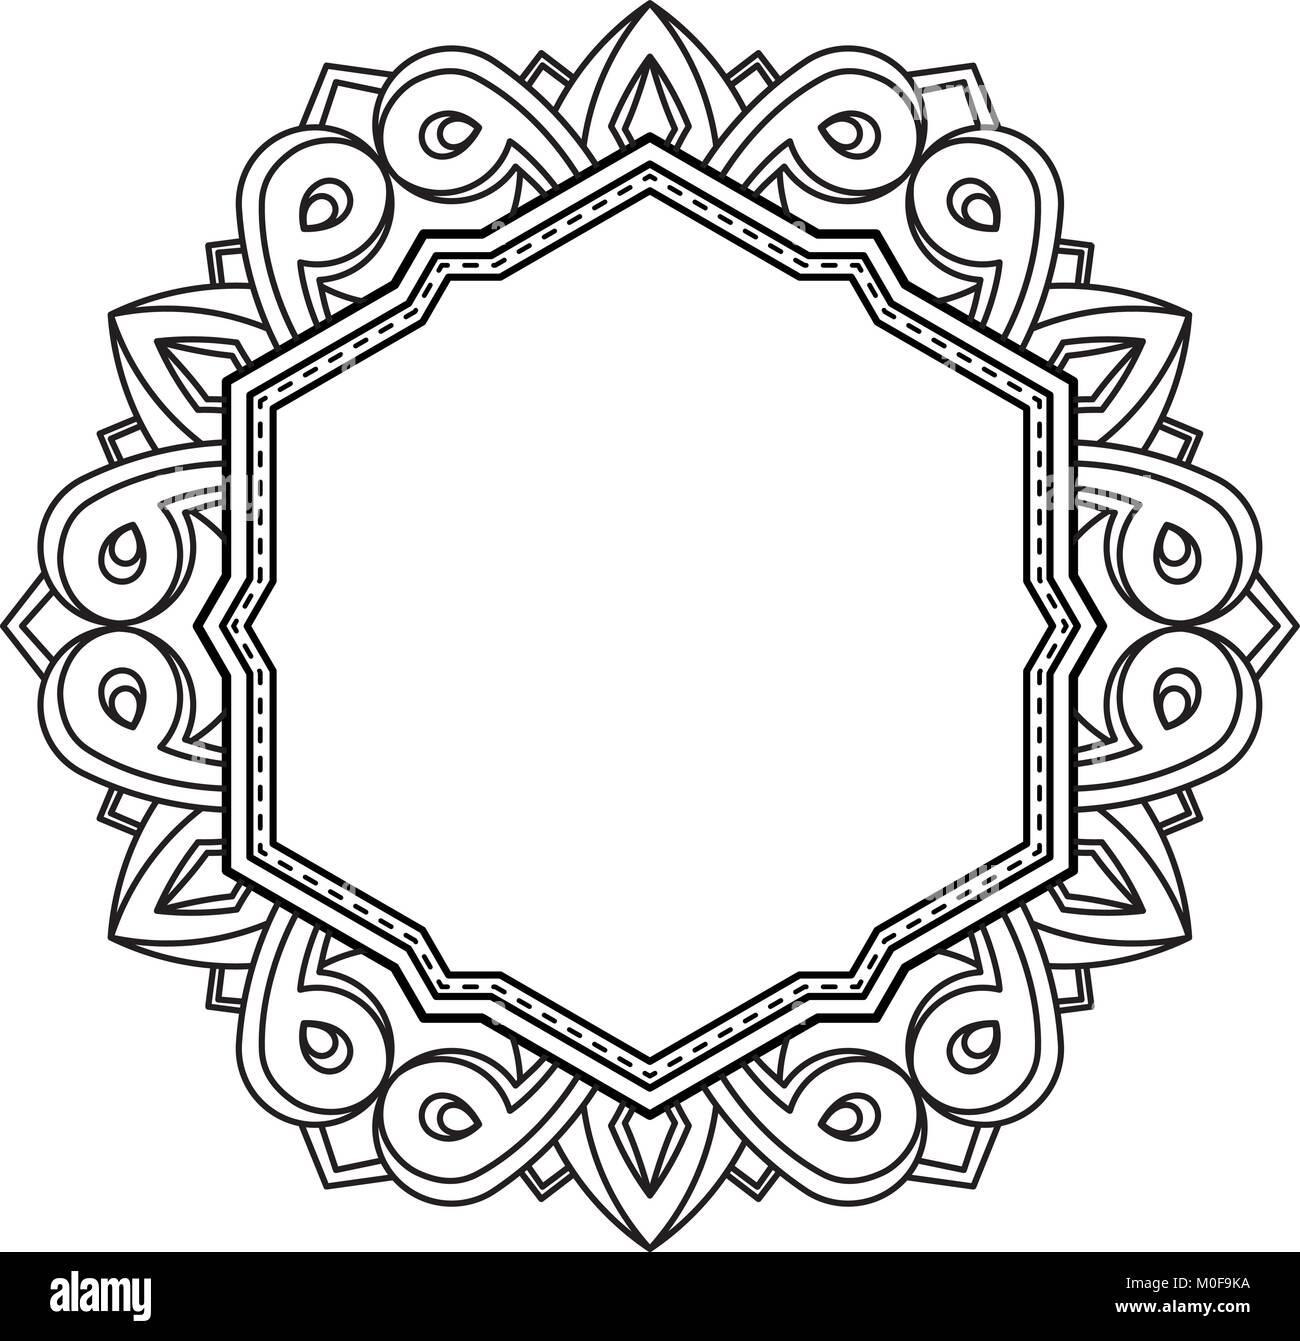 Unusual, hexagonal, lace frame, decorative element with empty place for your text. Vector illustration. - Stock Vector